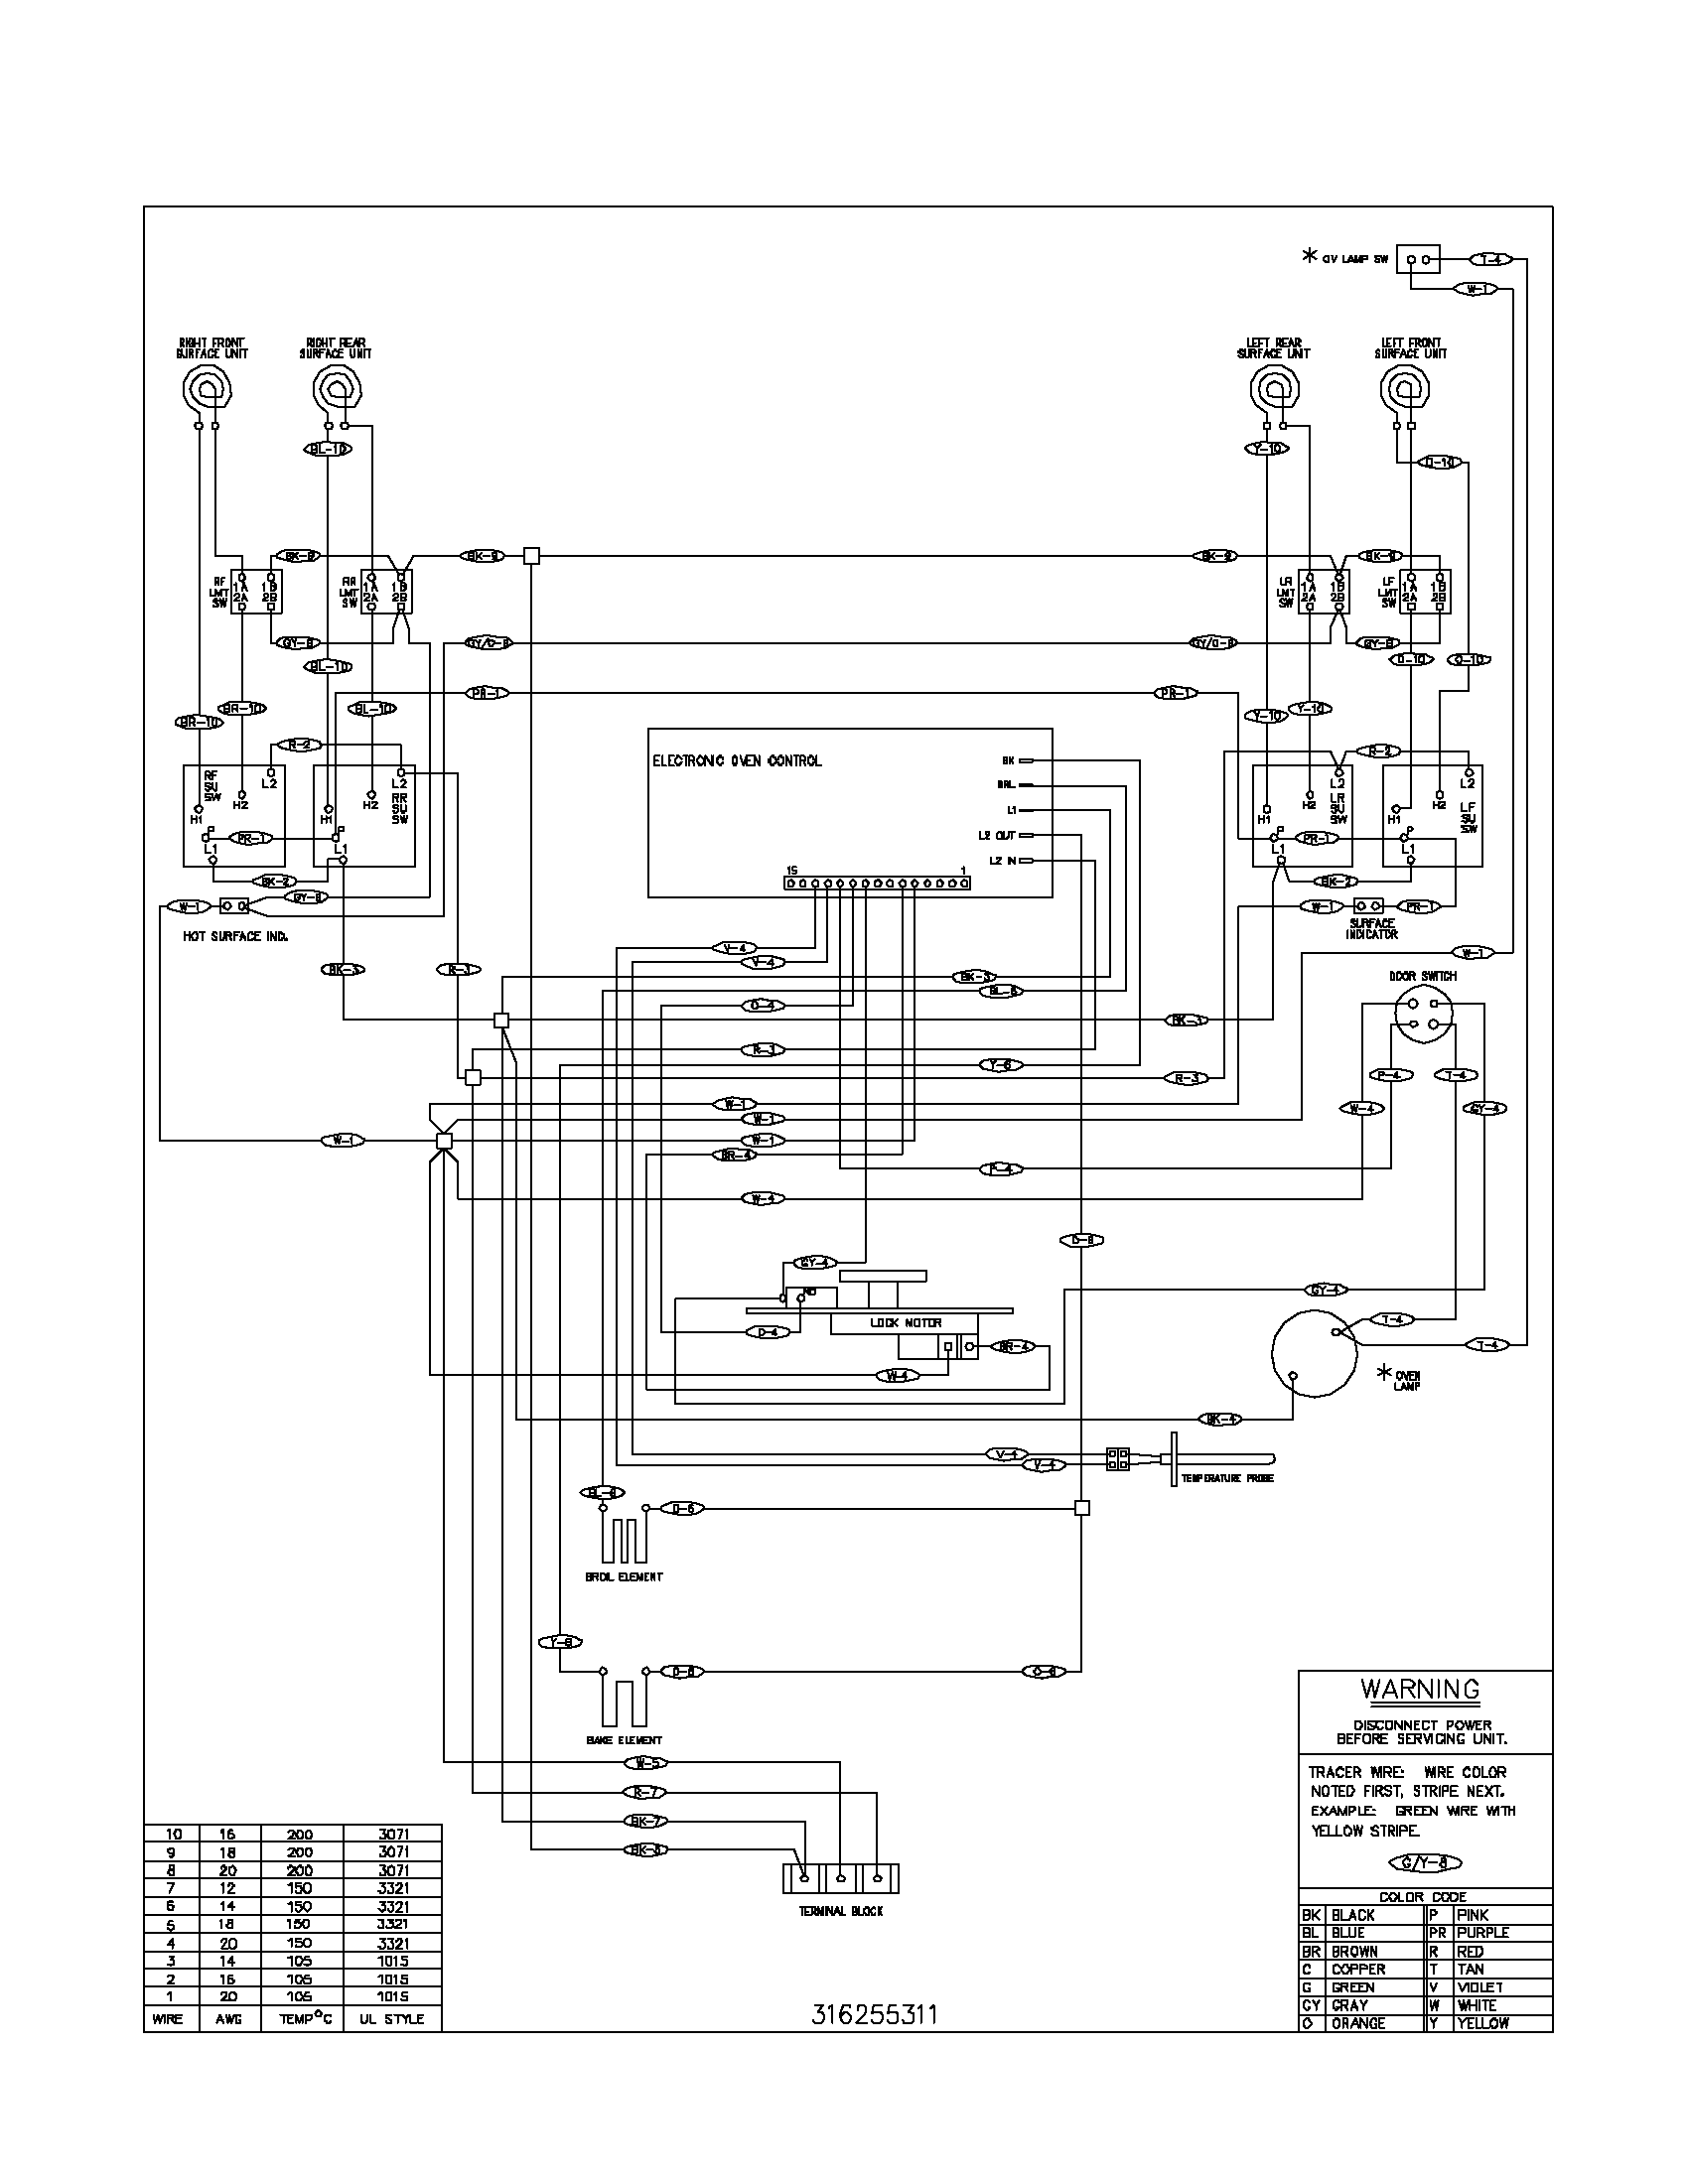 wiring diagram parts frigidaire fef366ccb electric range timer stove clocks and Thermador Cooktop Wiring-Diagram at edmiracle.co